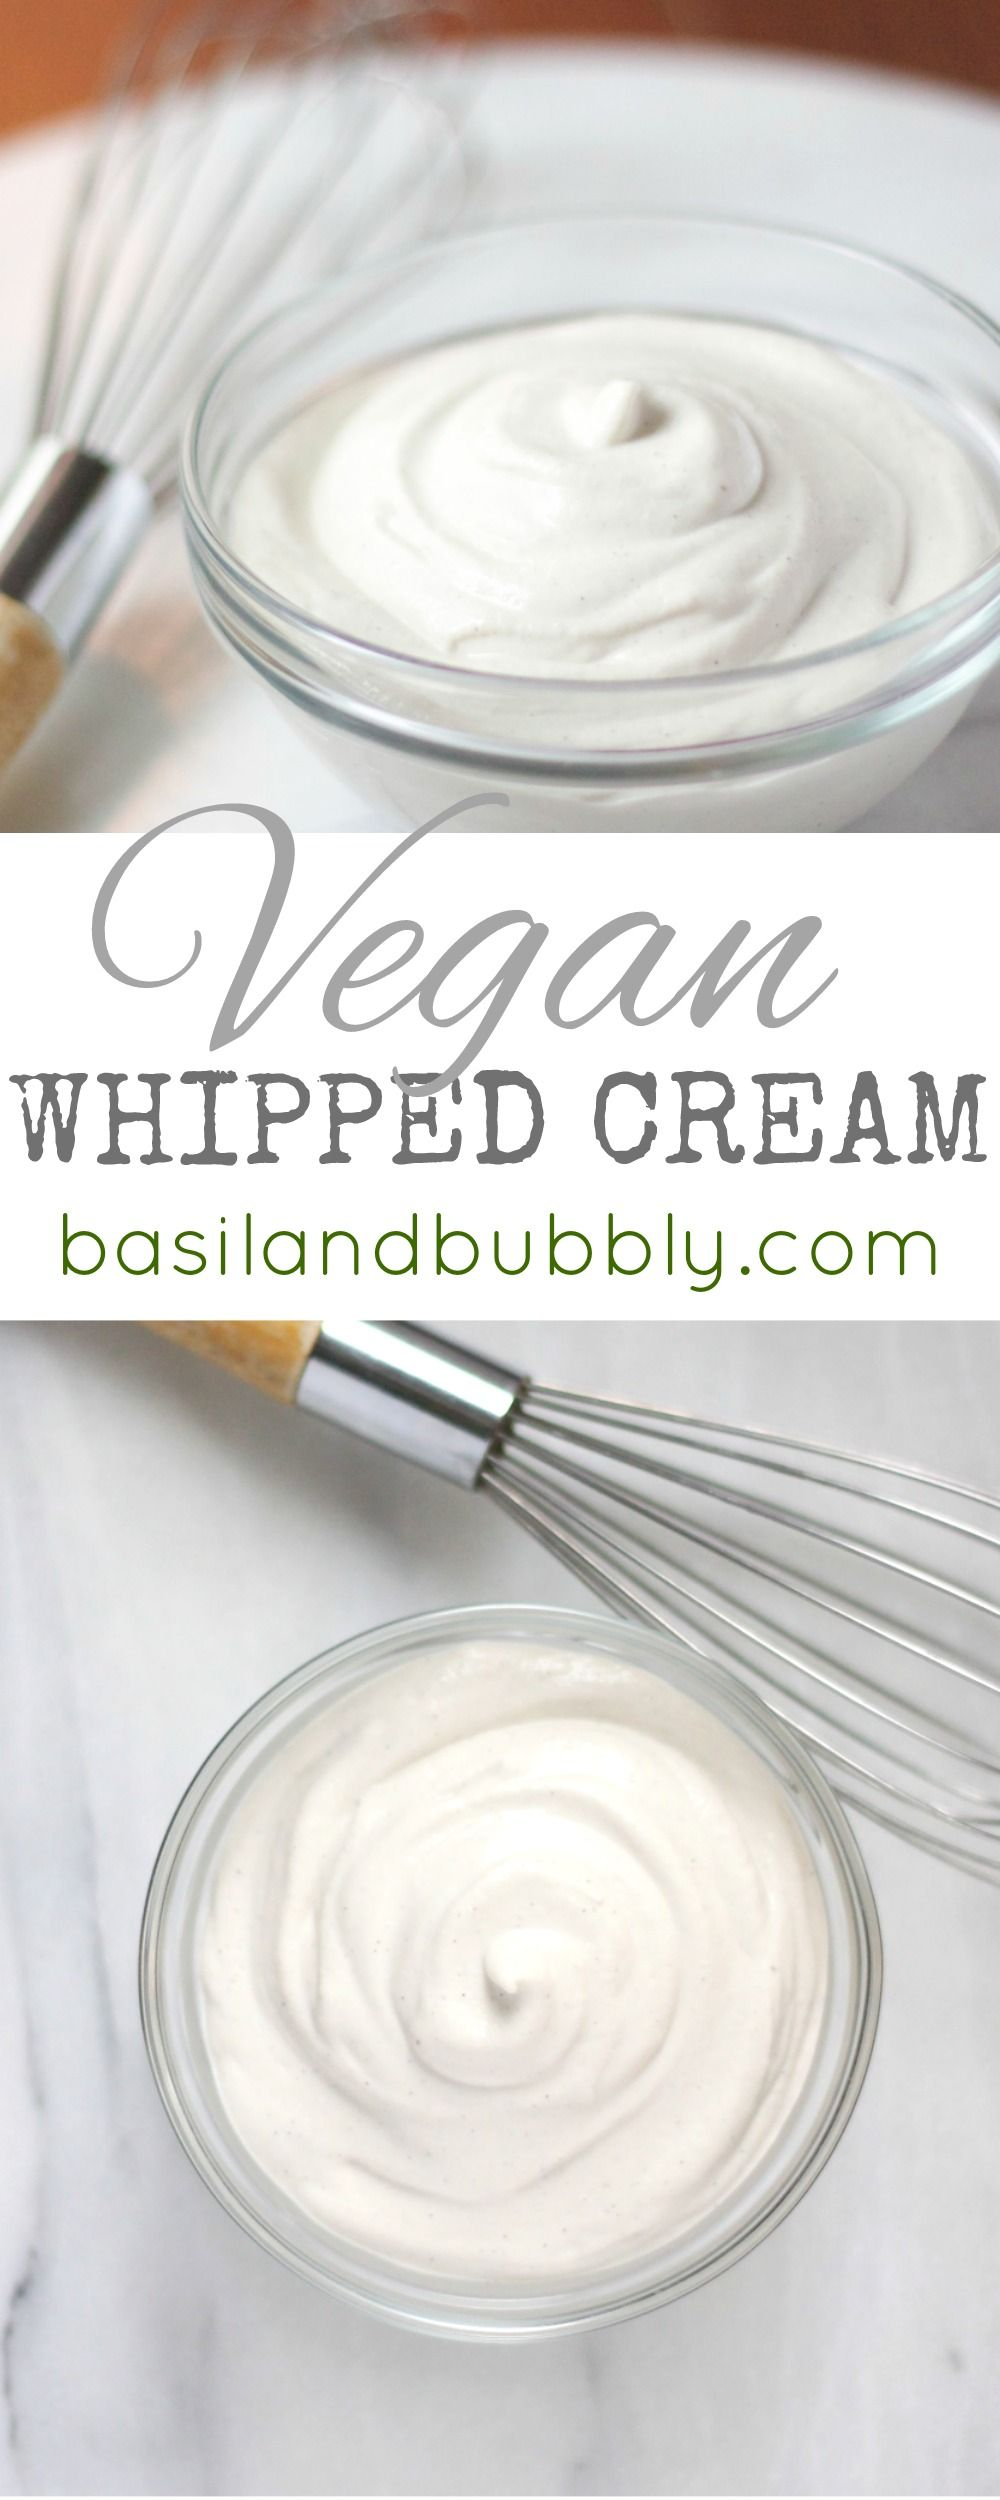 Cashew Whipped Cream Recipes With Whipping Cream Vegan Whipped Cream Vegan Desserts